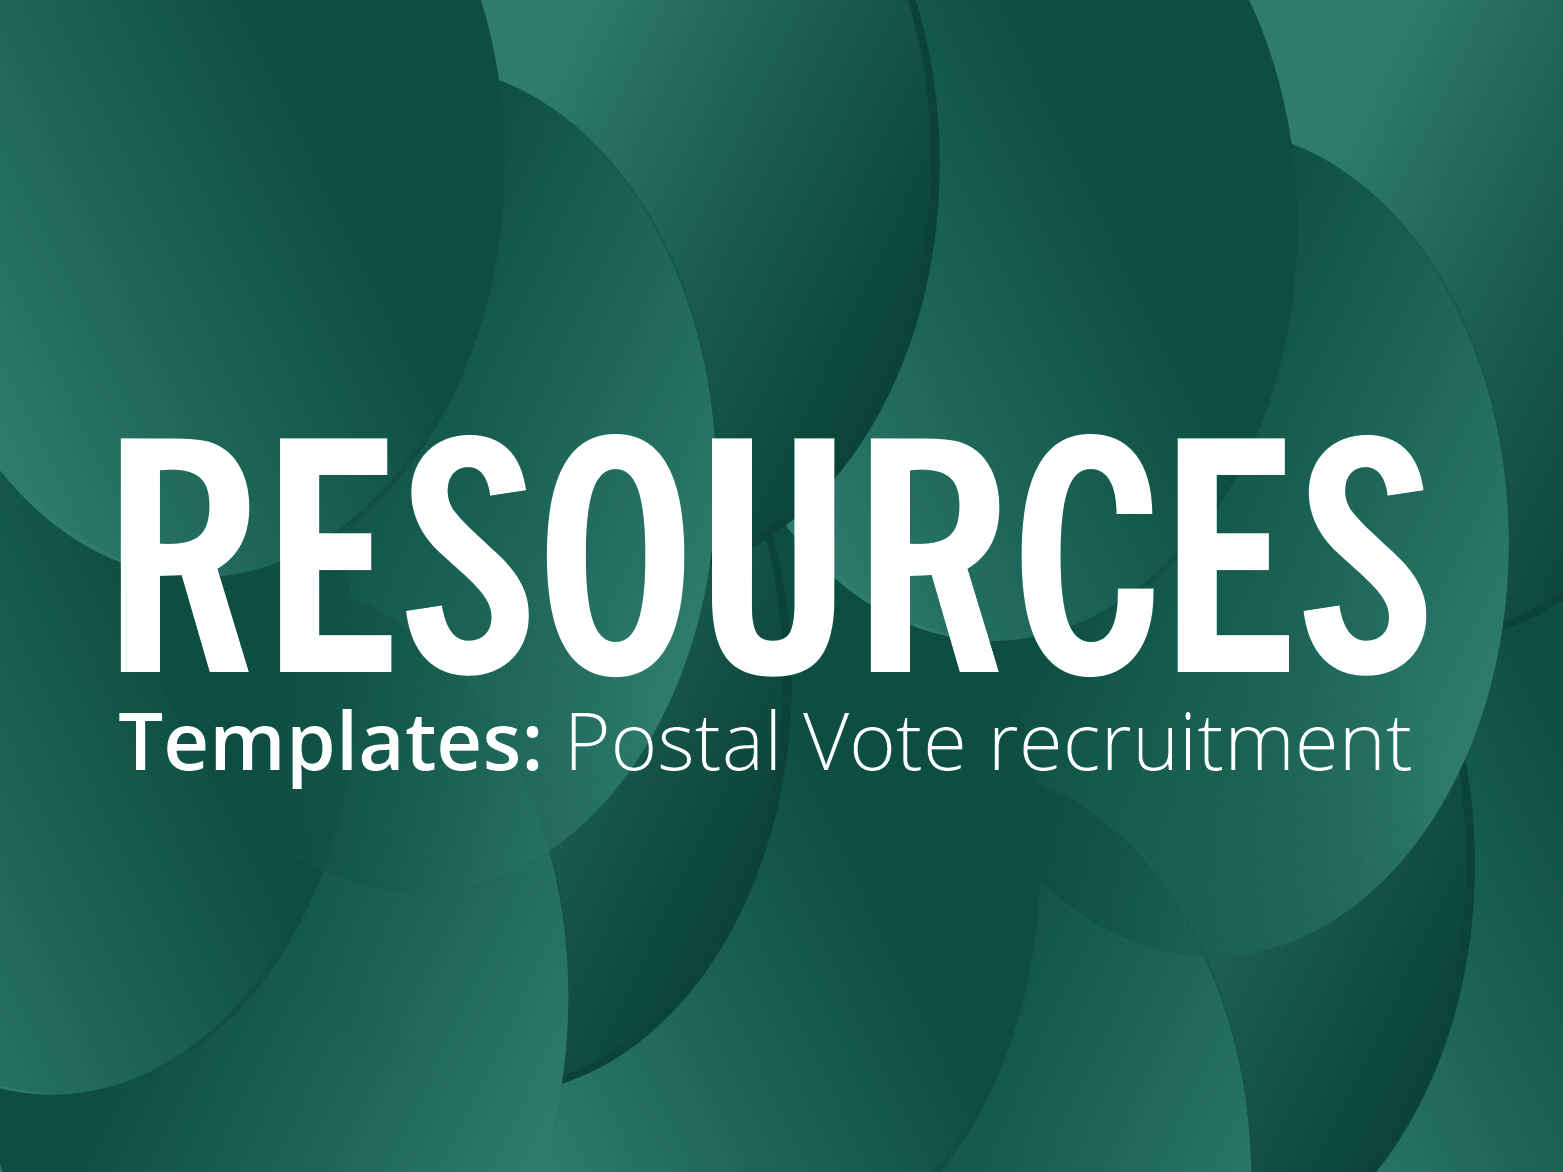 RESOURCES: Recruiting postal voters